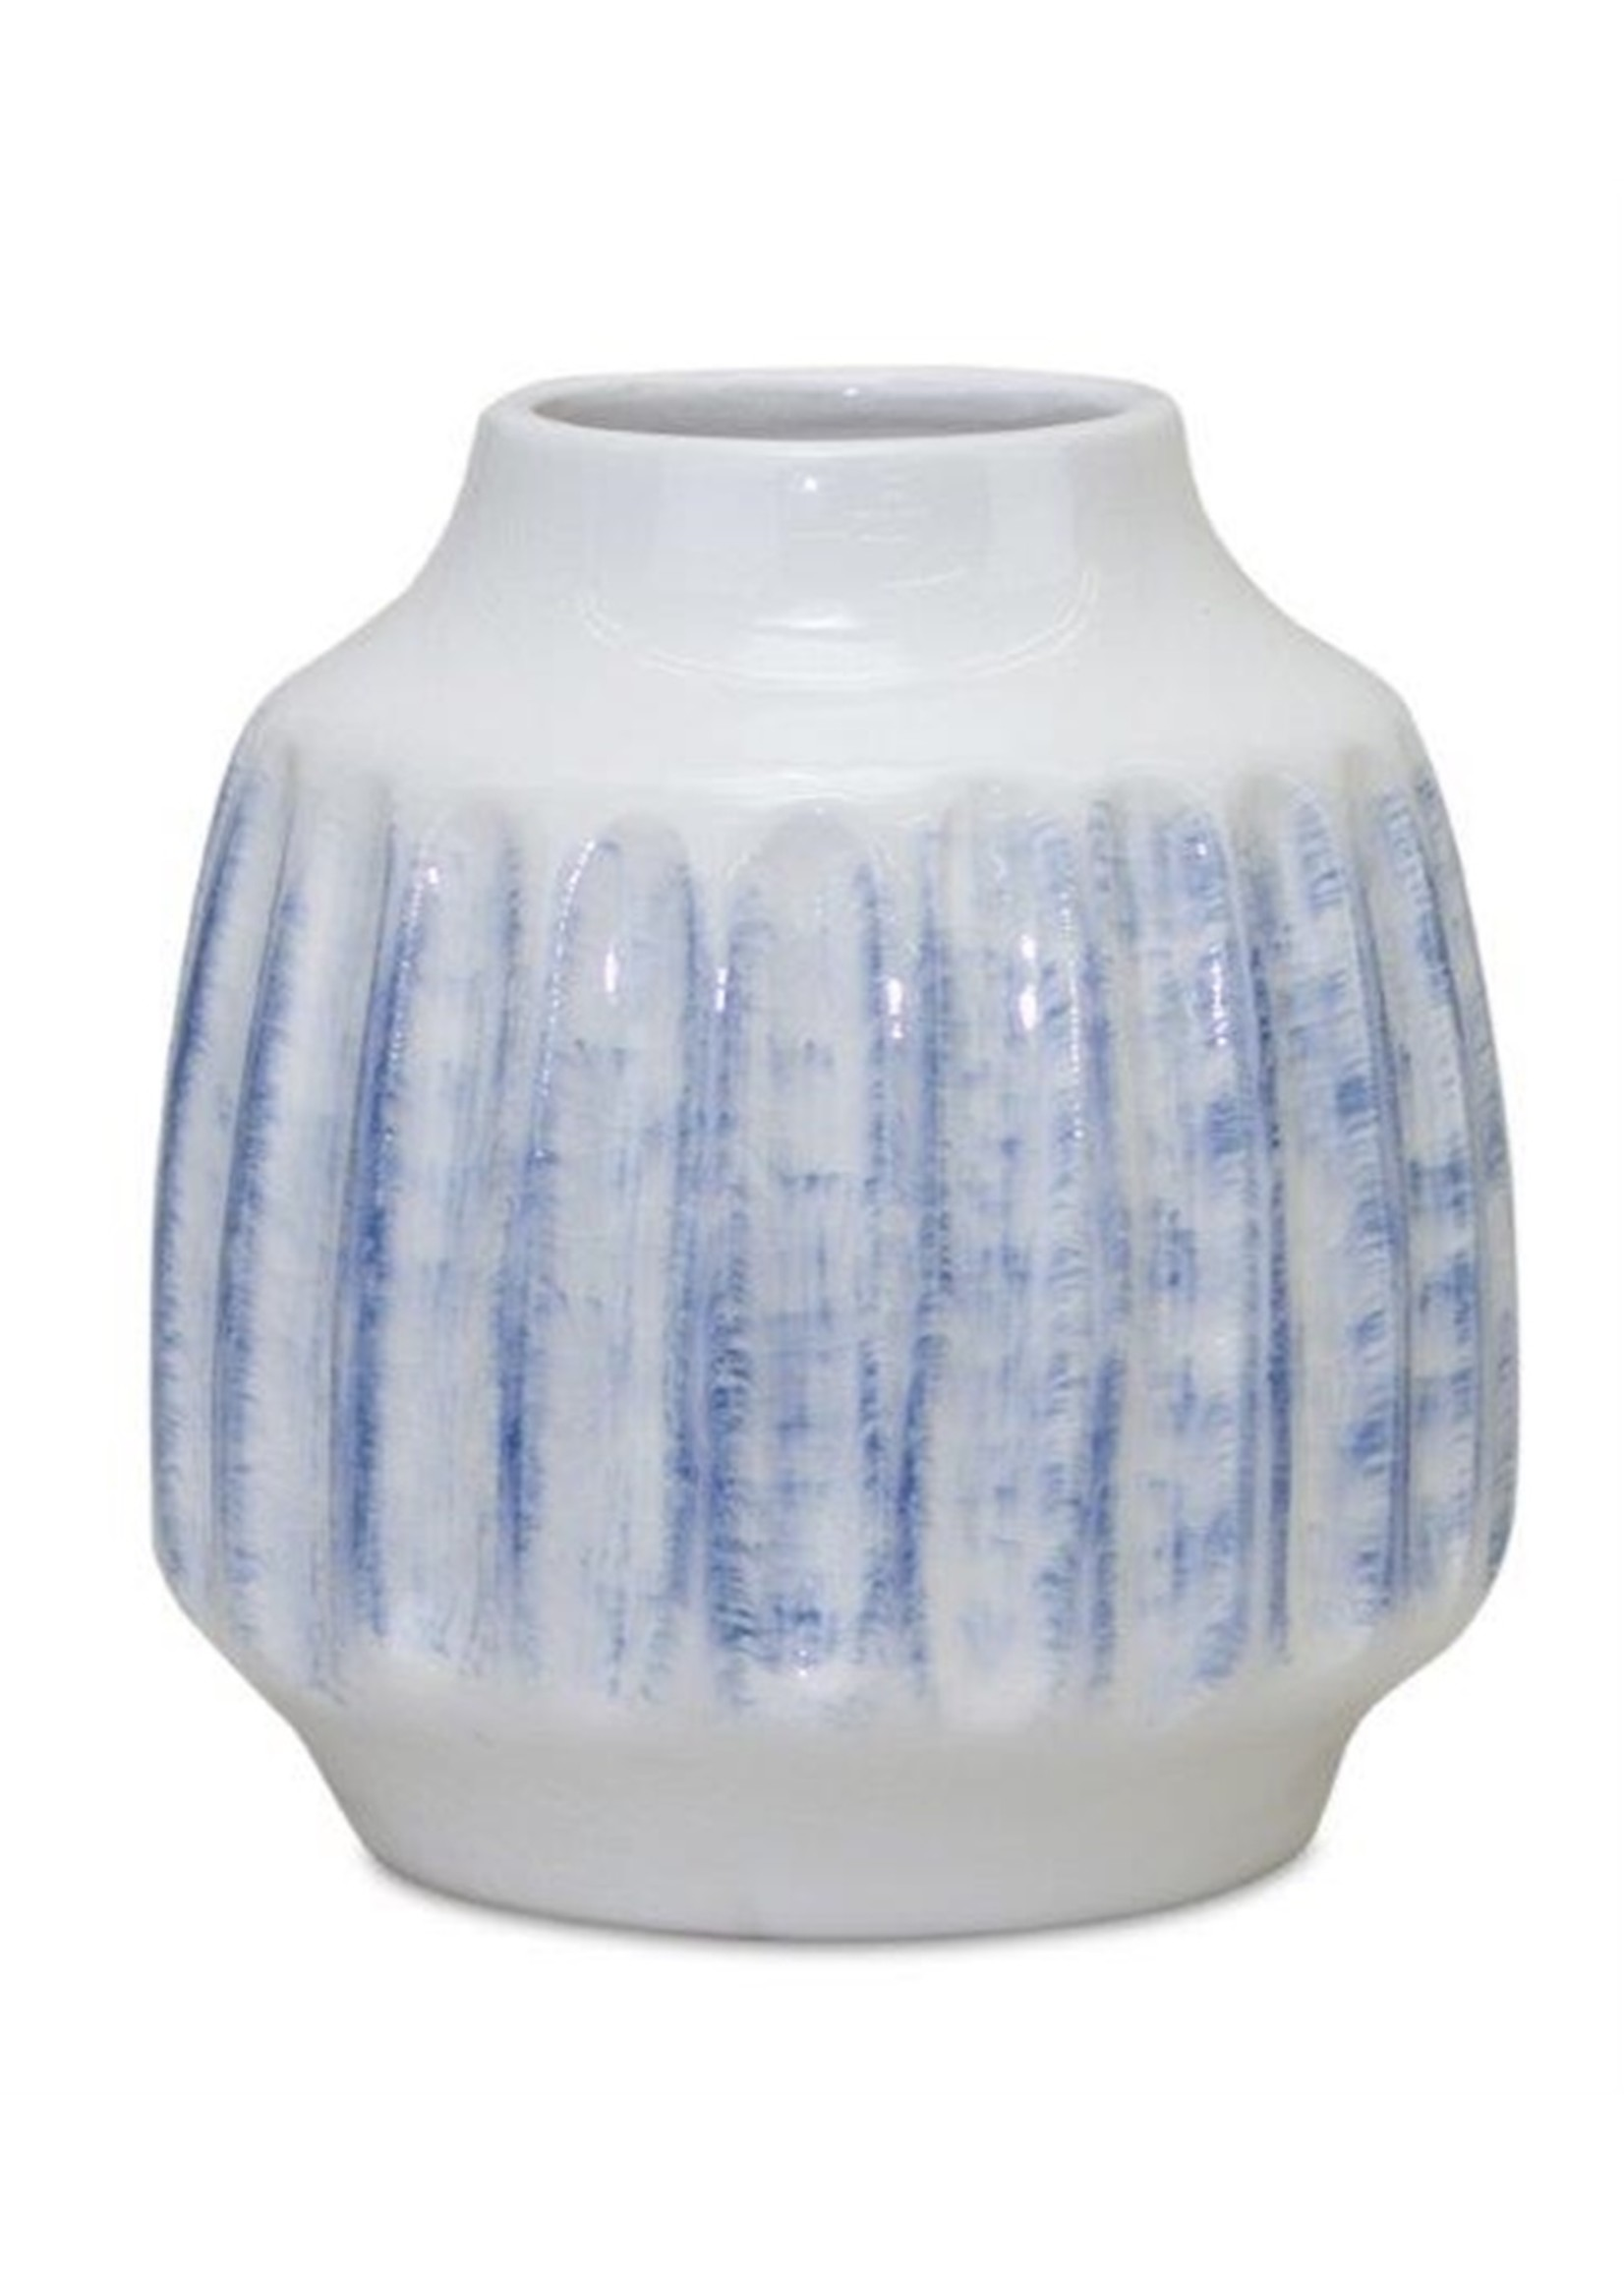 melrose Blue & White Ceramic Vase Beville